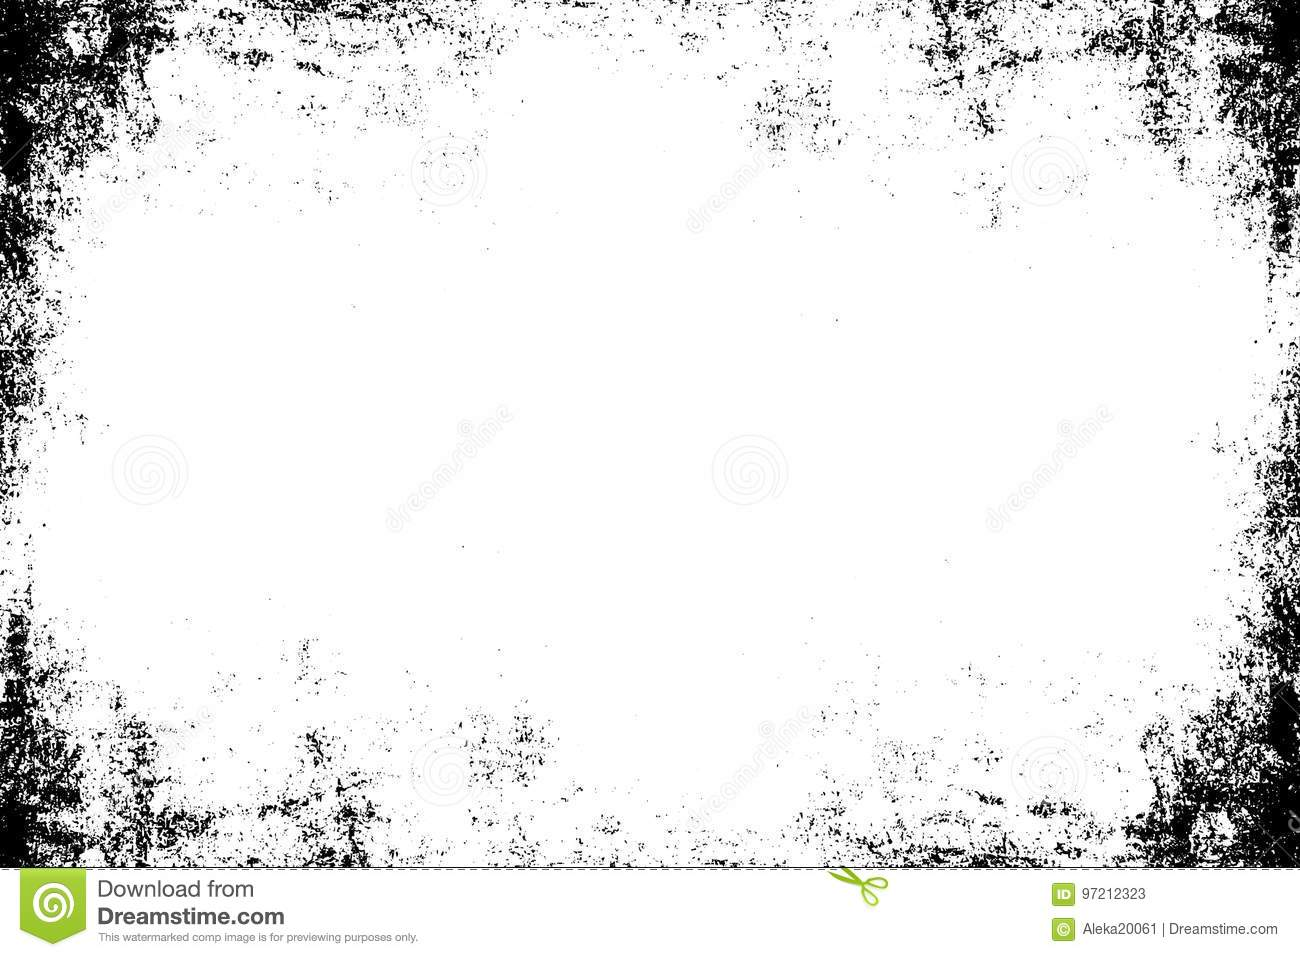 827903c8f91 Grunge frame symmetrical template. Old worn texture. Black white frame  background.